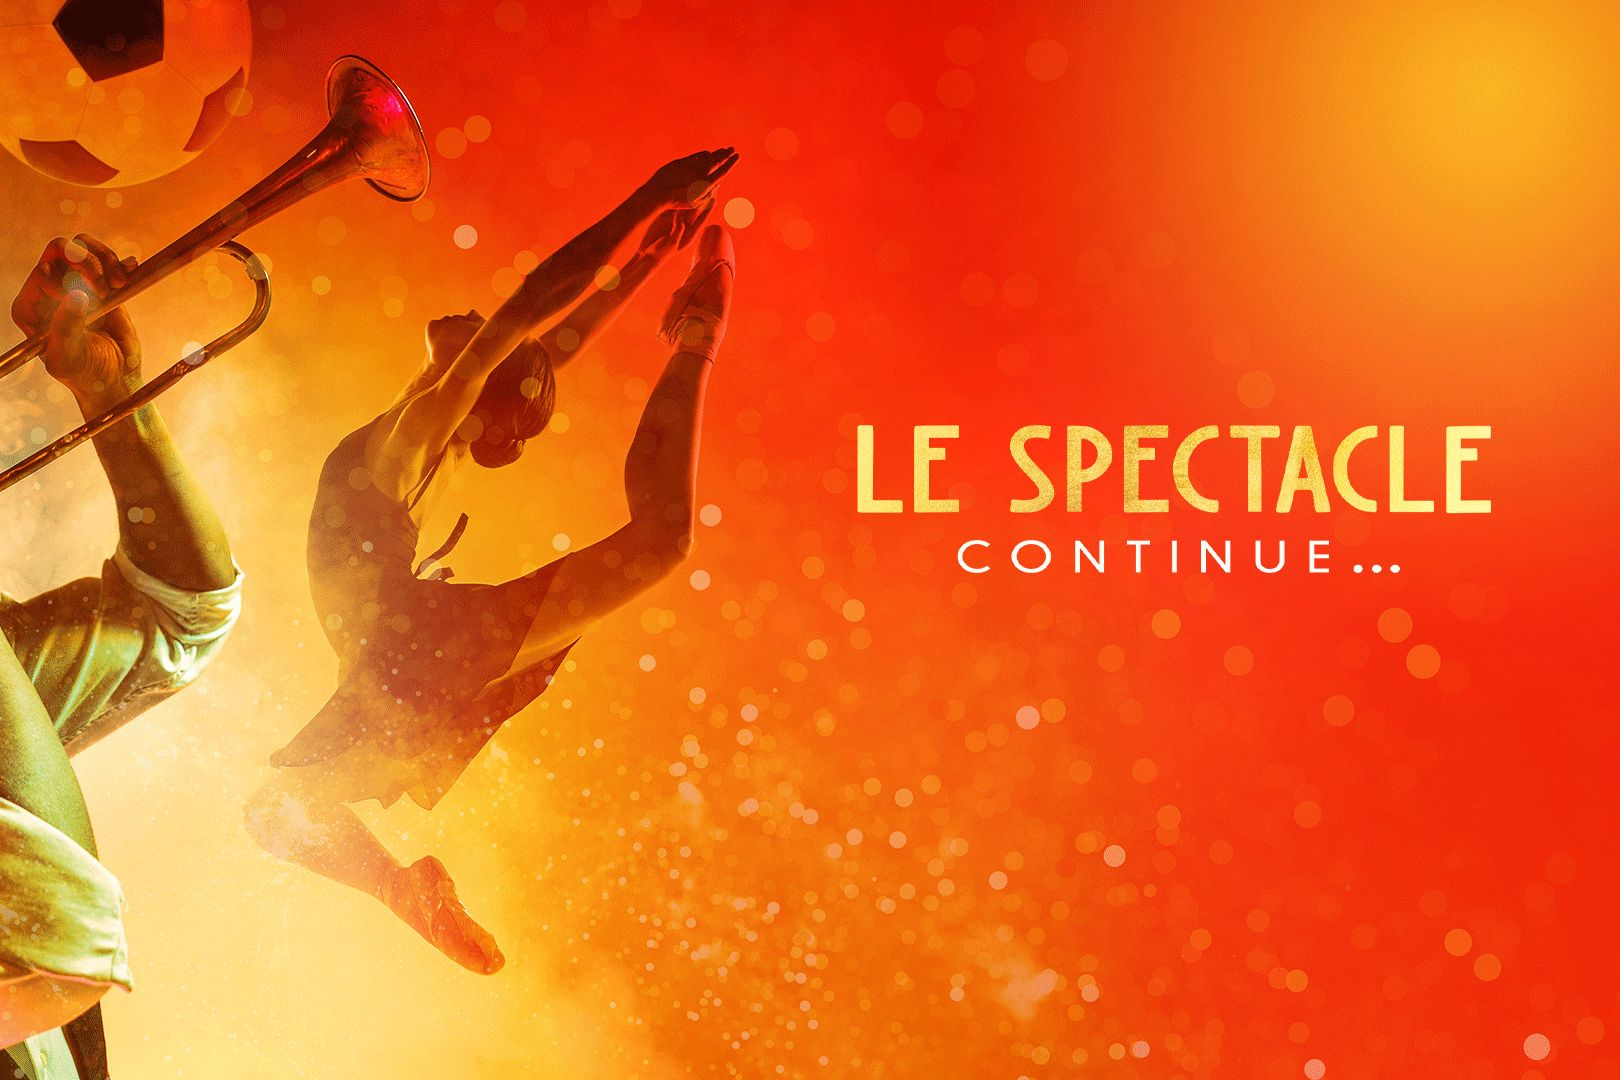 Le spectacle continue